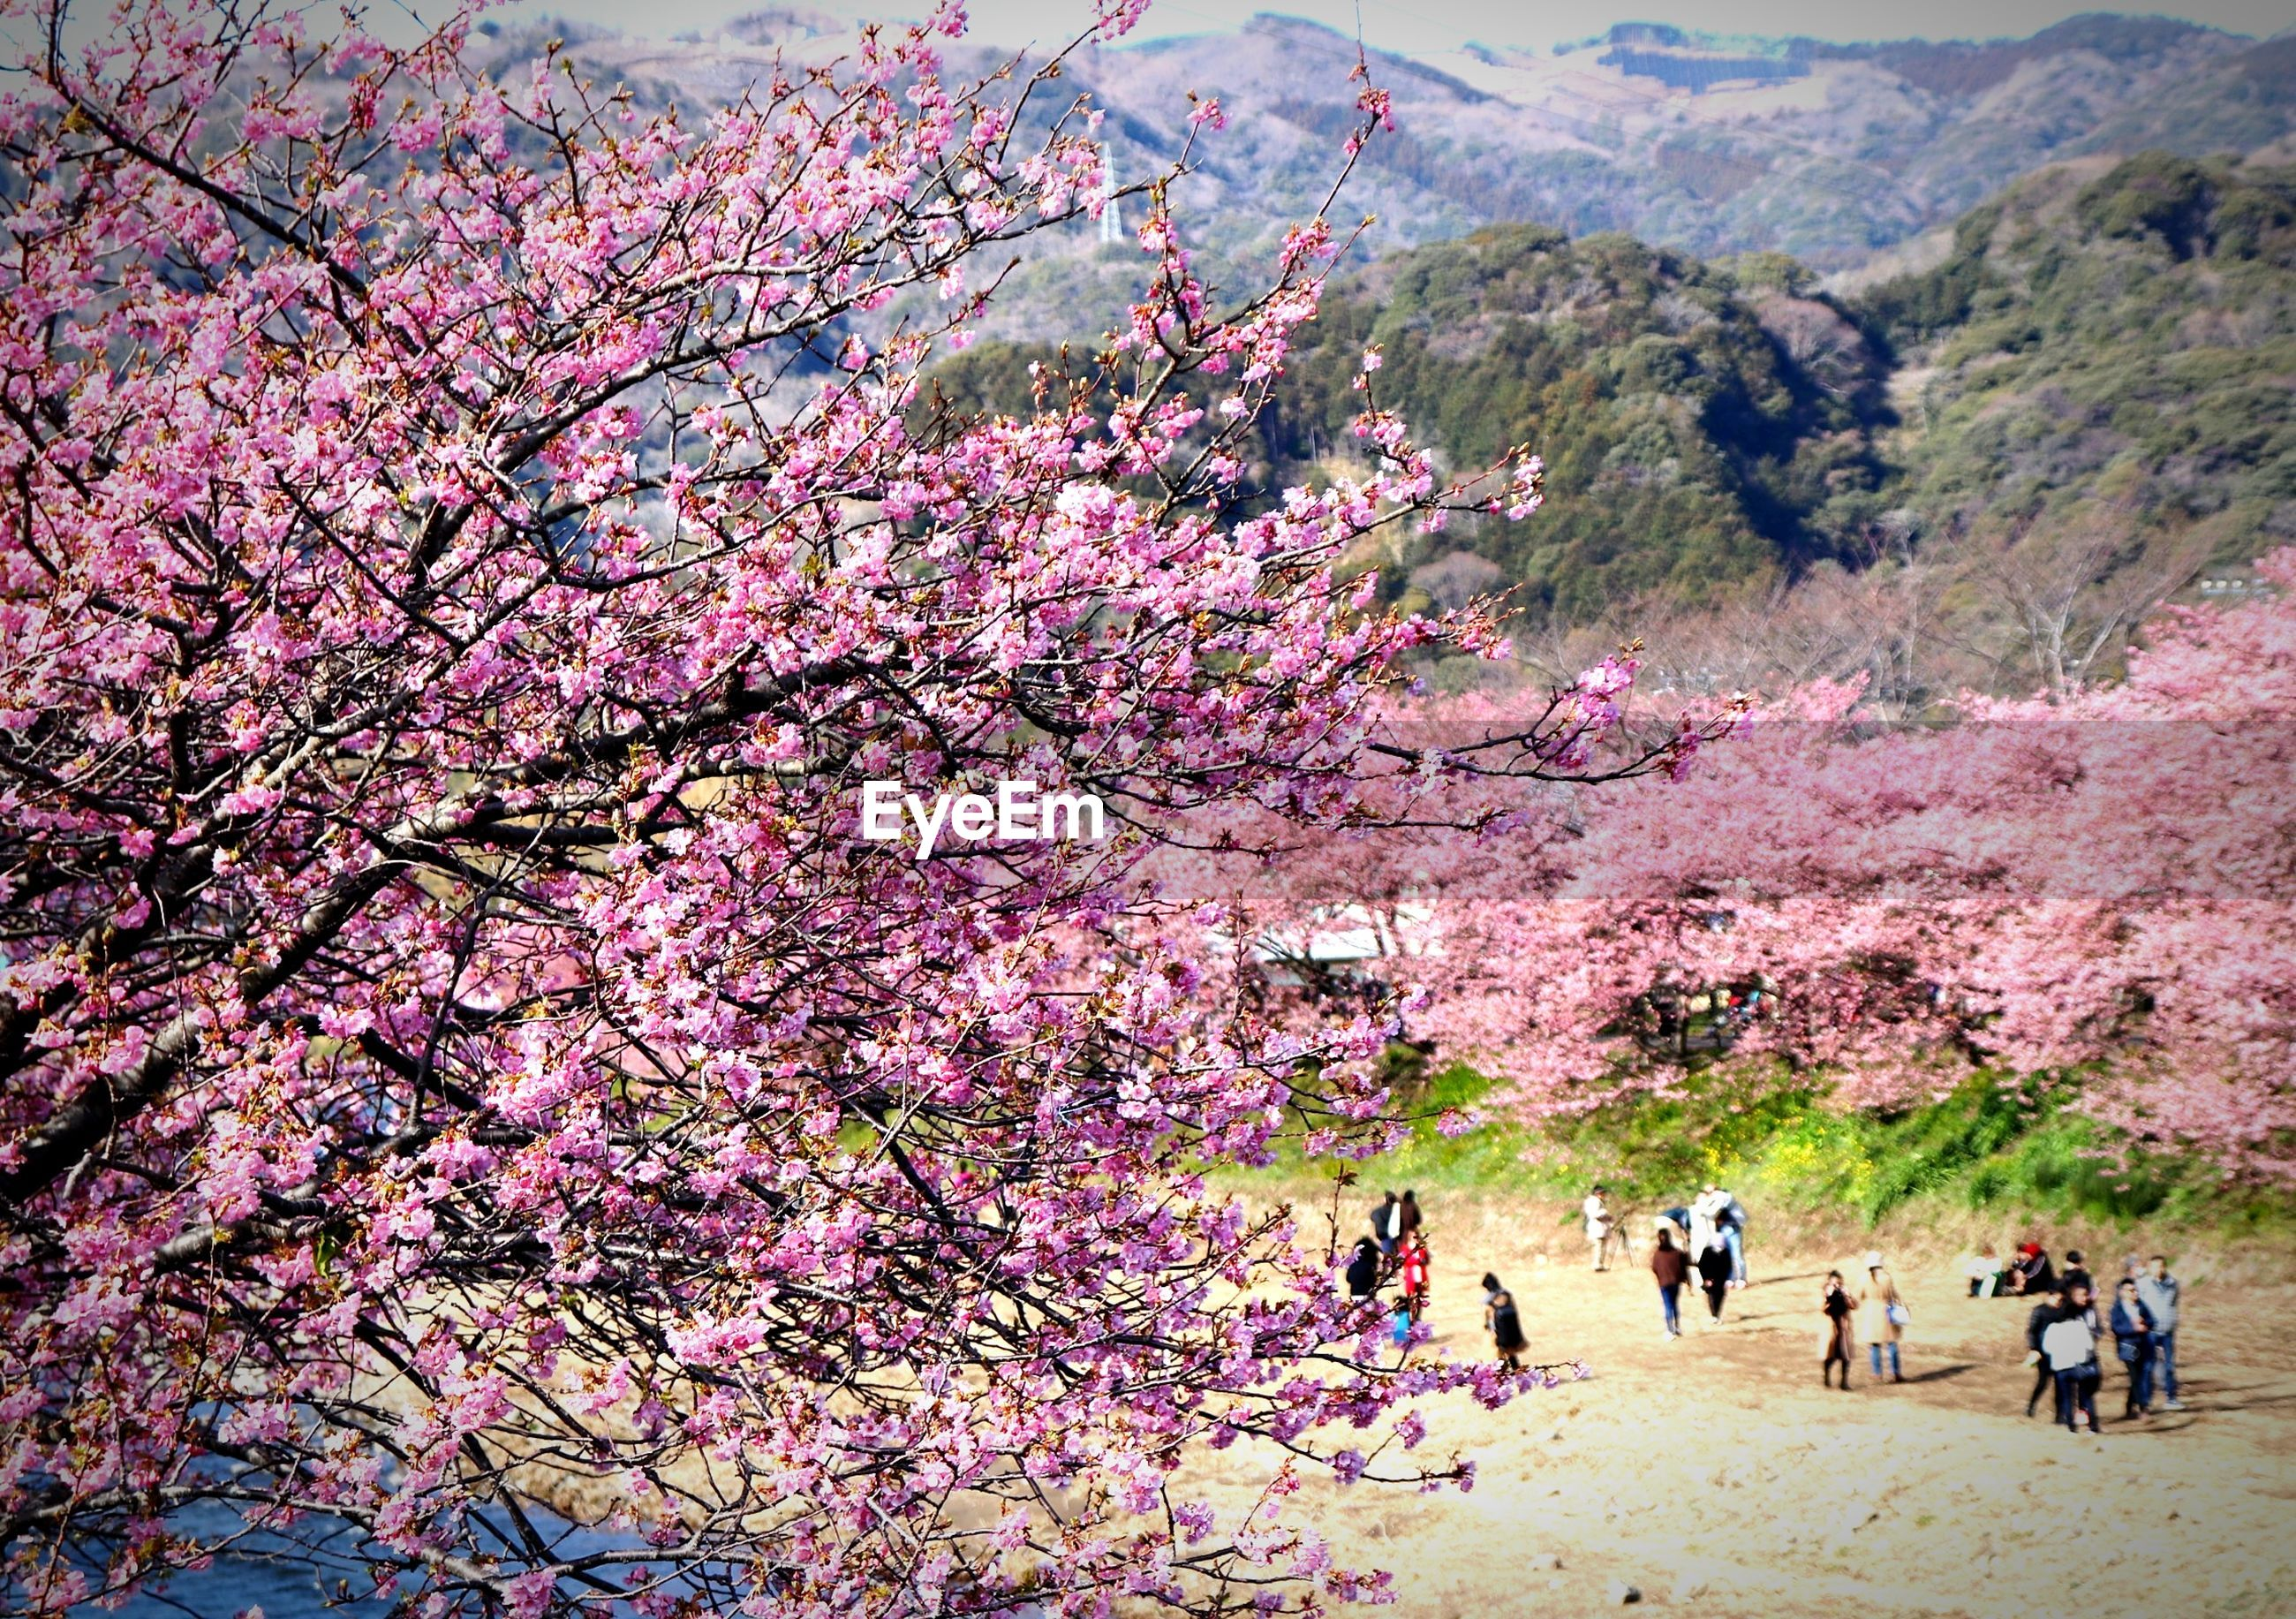 tree, cherry blossom, blossom, cherry tree, beauty in nature, flower, nature, springtime, growth, pink color, branch, fragility, real people, outdoors, day, freshness, scenics, men, sky, people